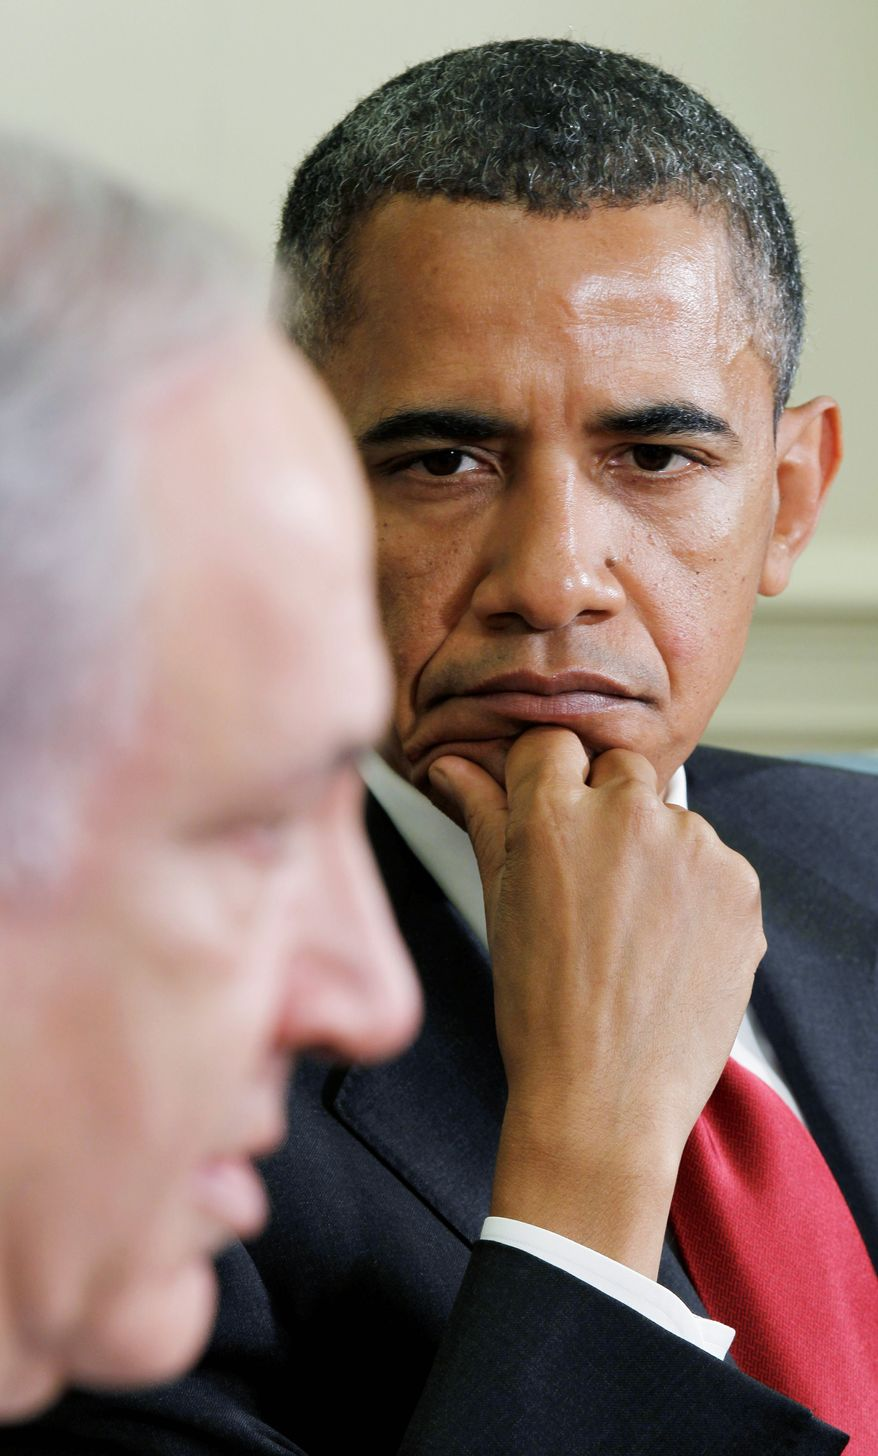 """'UNBREAKABLE BOND': Israeli Prime Minister Benjamin Netanyahu and President Obama both said reports about more distant relations in the past year were """"wrong."""" Mr. Netanyahu visited Mr. Obama in the Oval Office and talked with a group of reporters. (Associated Press)"""